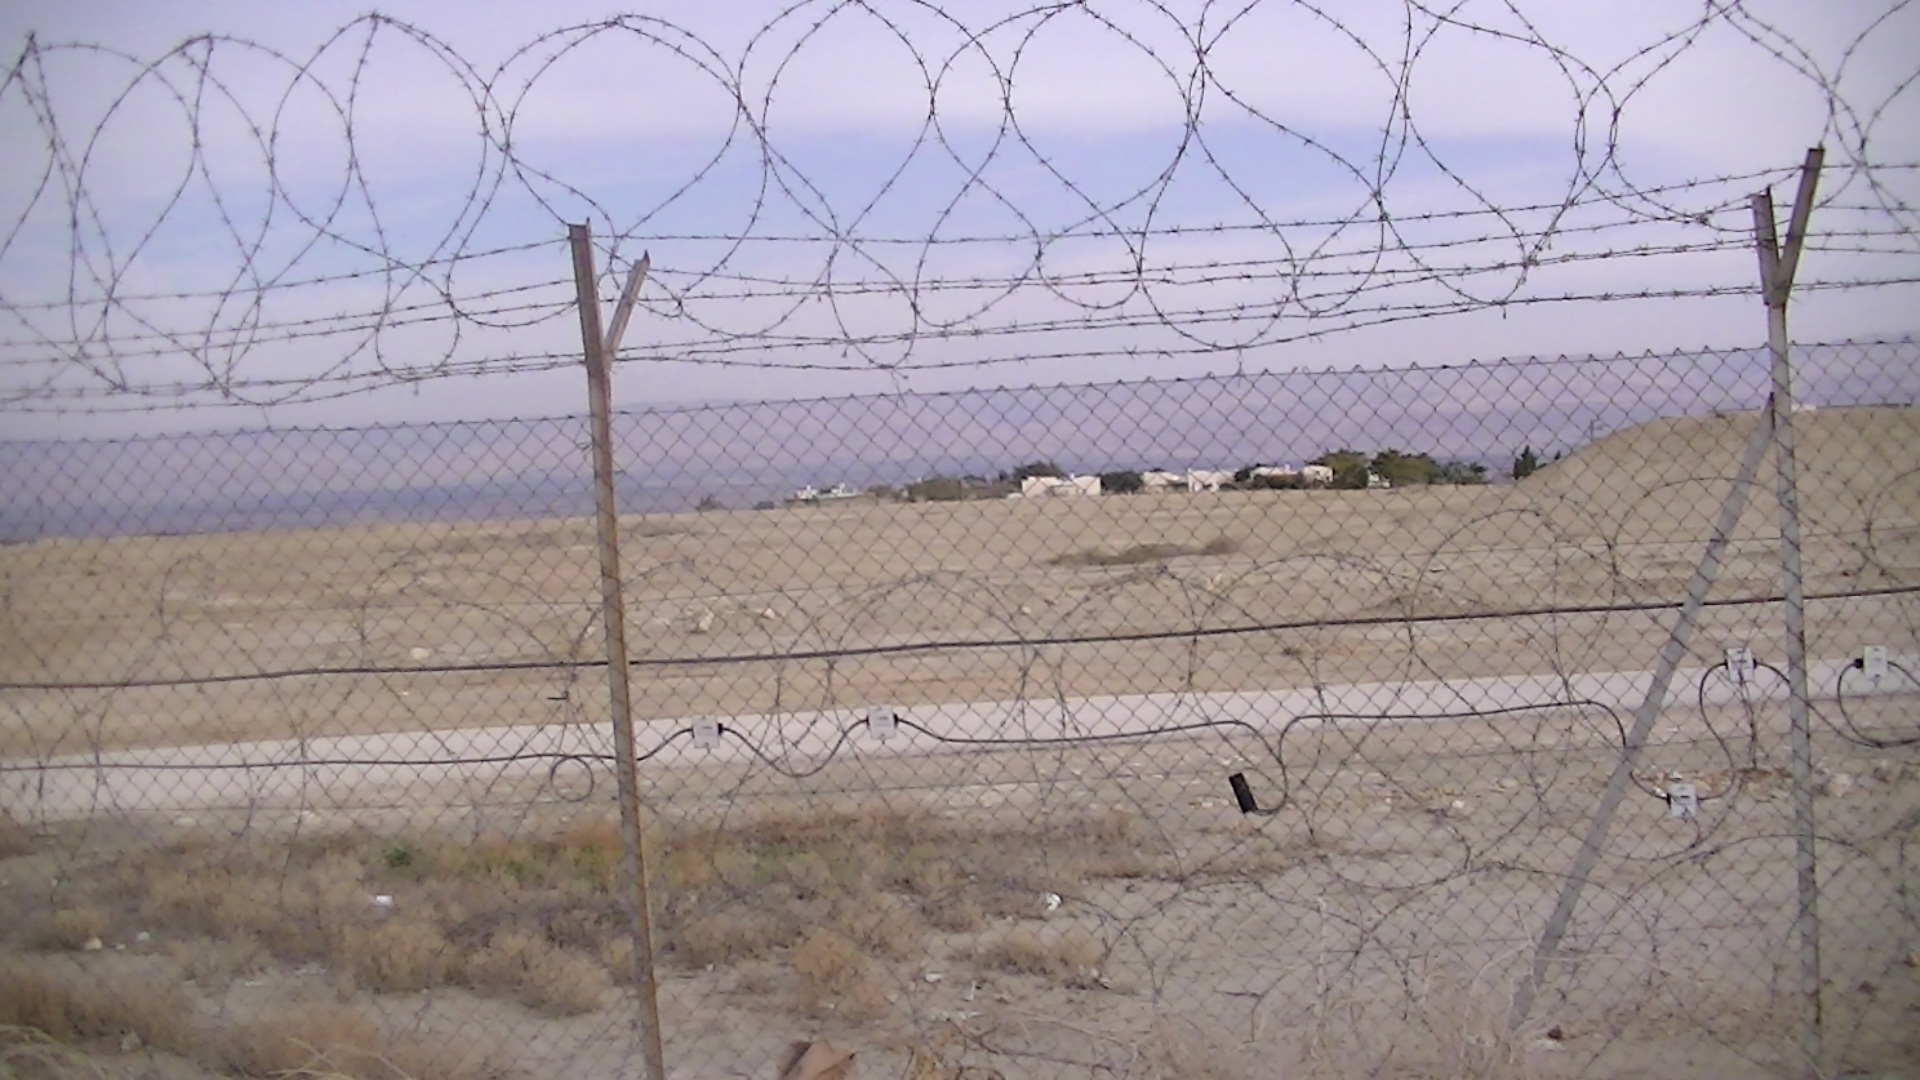 The fence surrounding Beit Ha'Arava, photo taken by Corporate Watch, February 2013